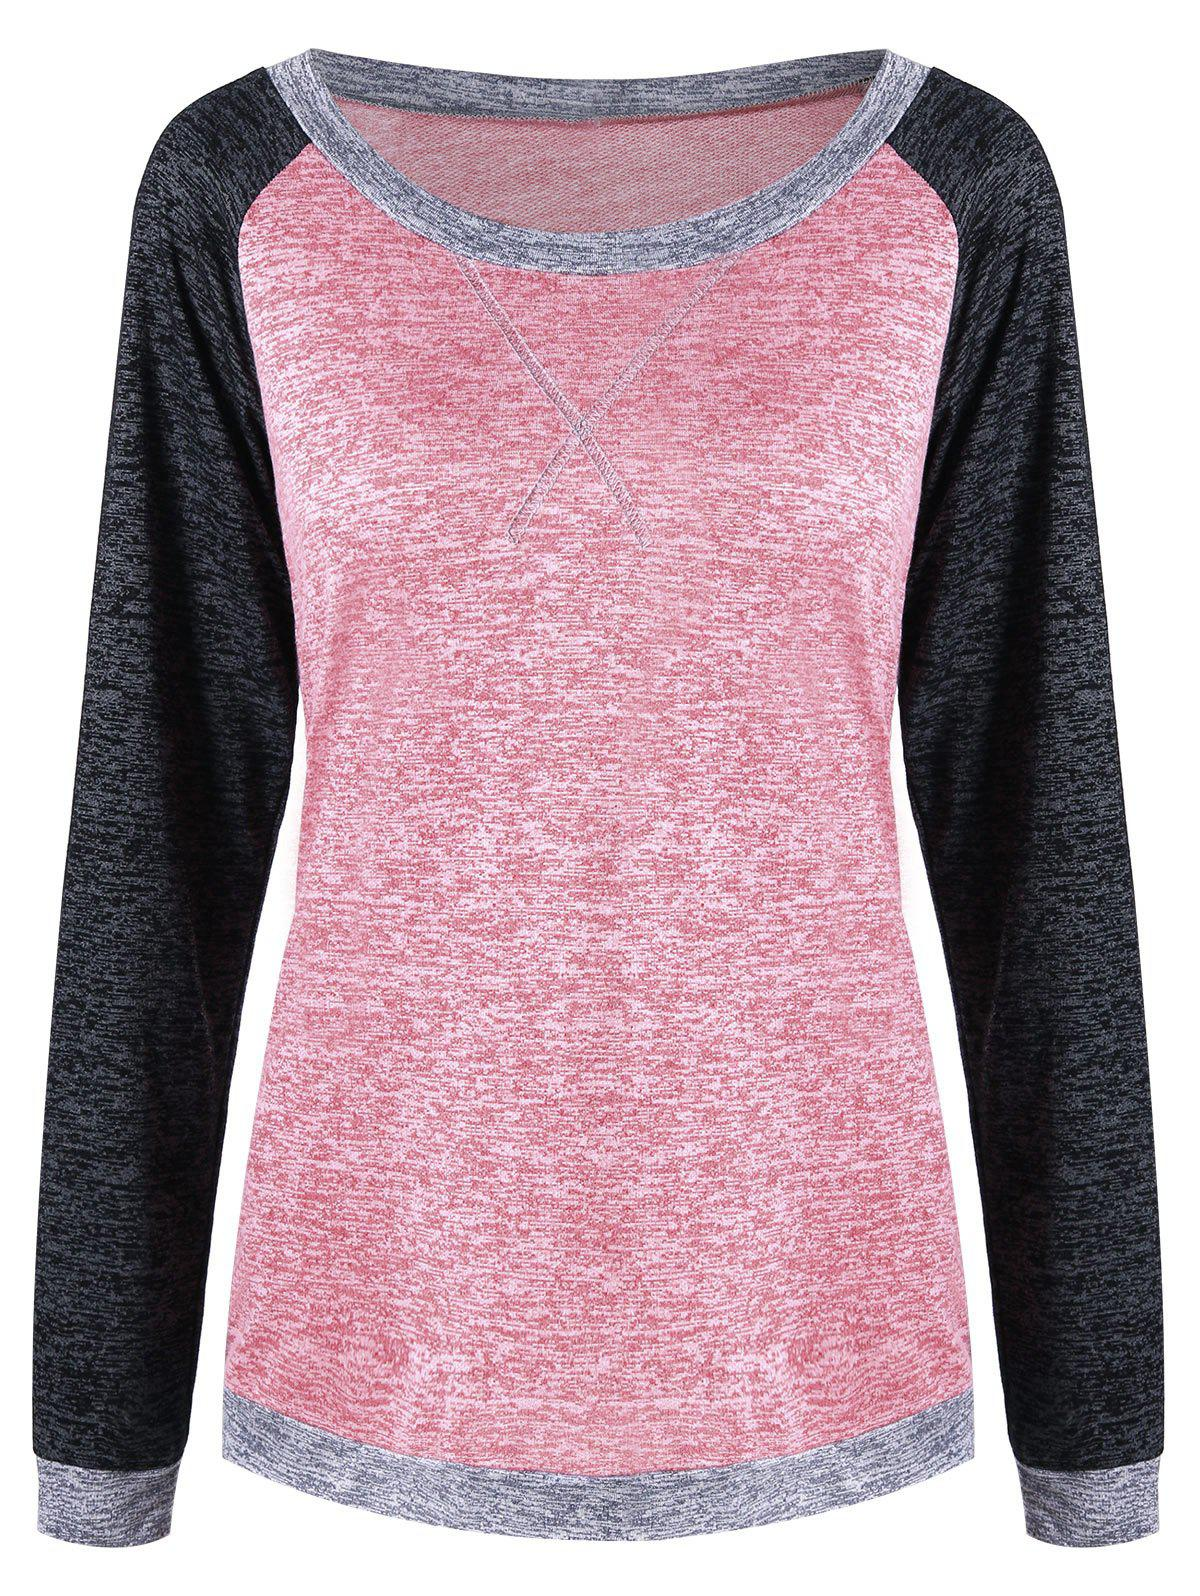 Marled Raglan Sleeve T-shirtWOMEN<br><br>Size: 2XL; Color: PAPAYA; Material: Polyester,Rayon; Shirt Length: Regular; Sleeve Length: Full; Collar: Scoop Neck; Style: Casual; Pattern Type: Solid; Season: Fall,Spring; Weight: 0.2500kg; Package Contents: 1 x Top;